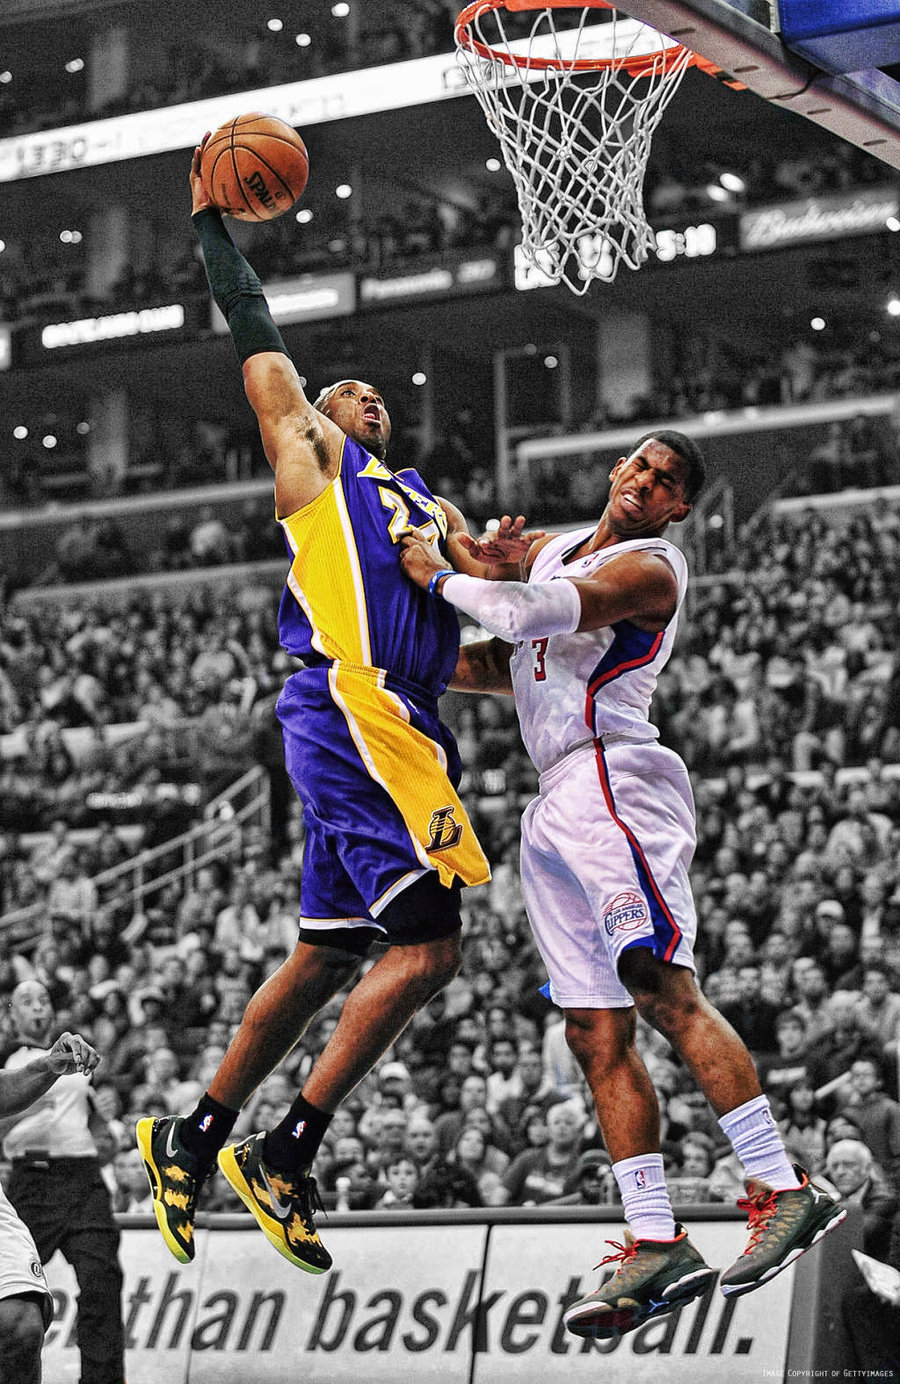 Kobe Bryant Screensaver : bryant, screensaver, Screensaver, Posted, Johnson